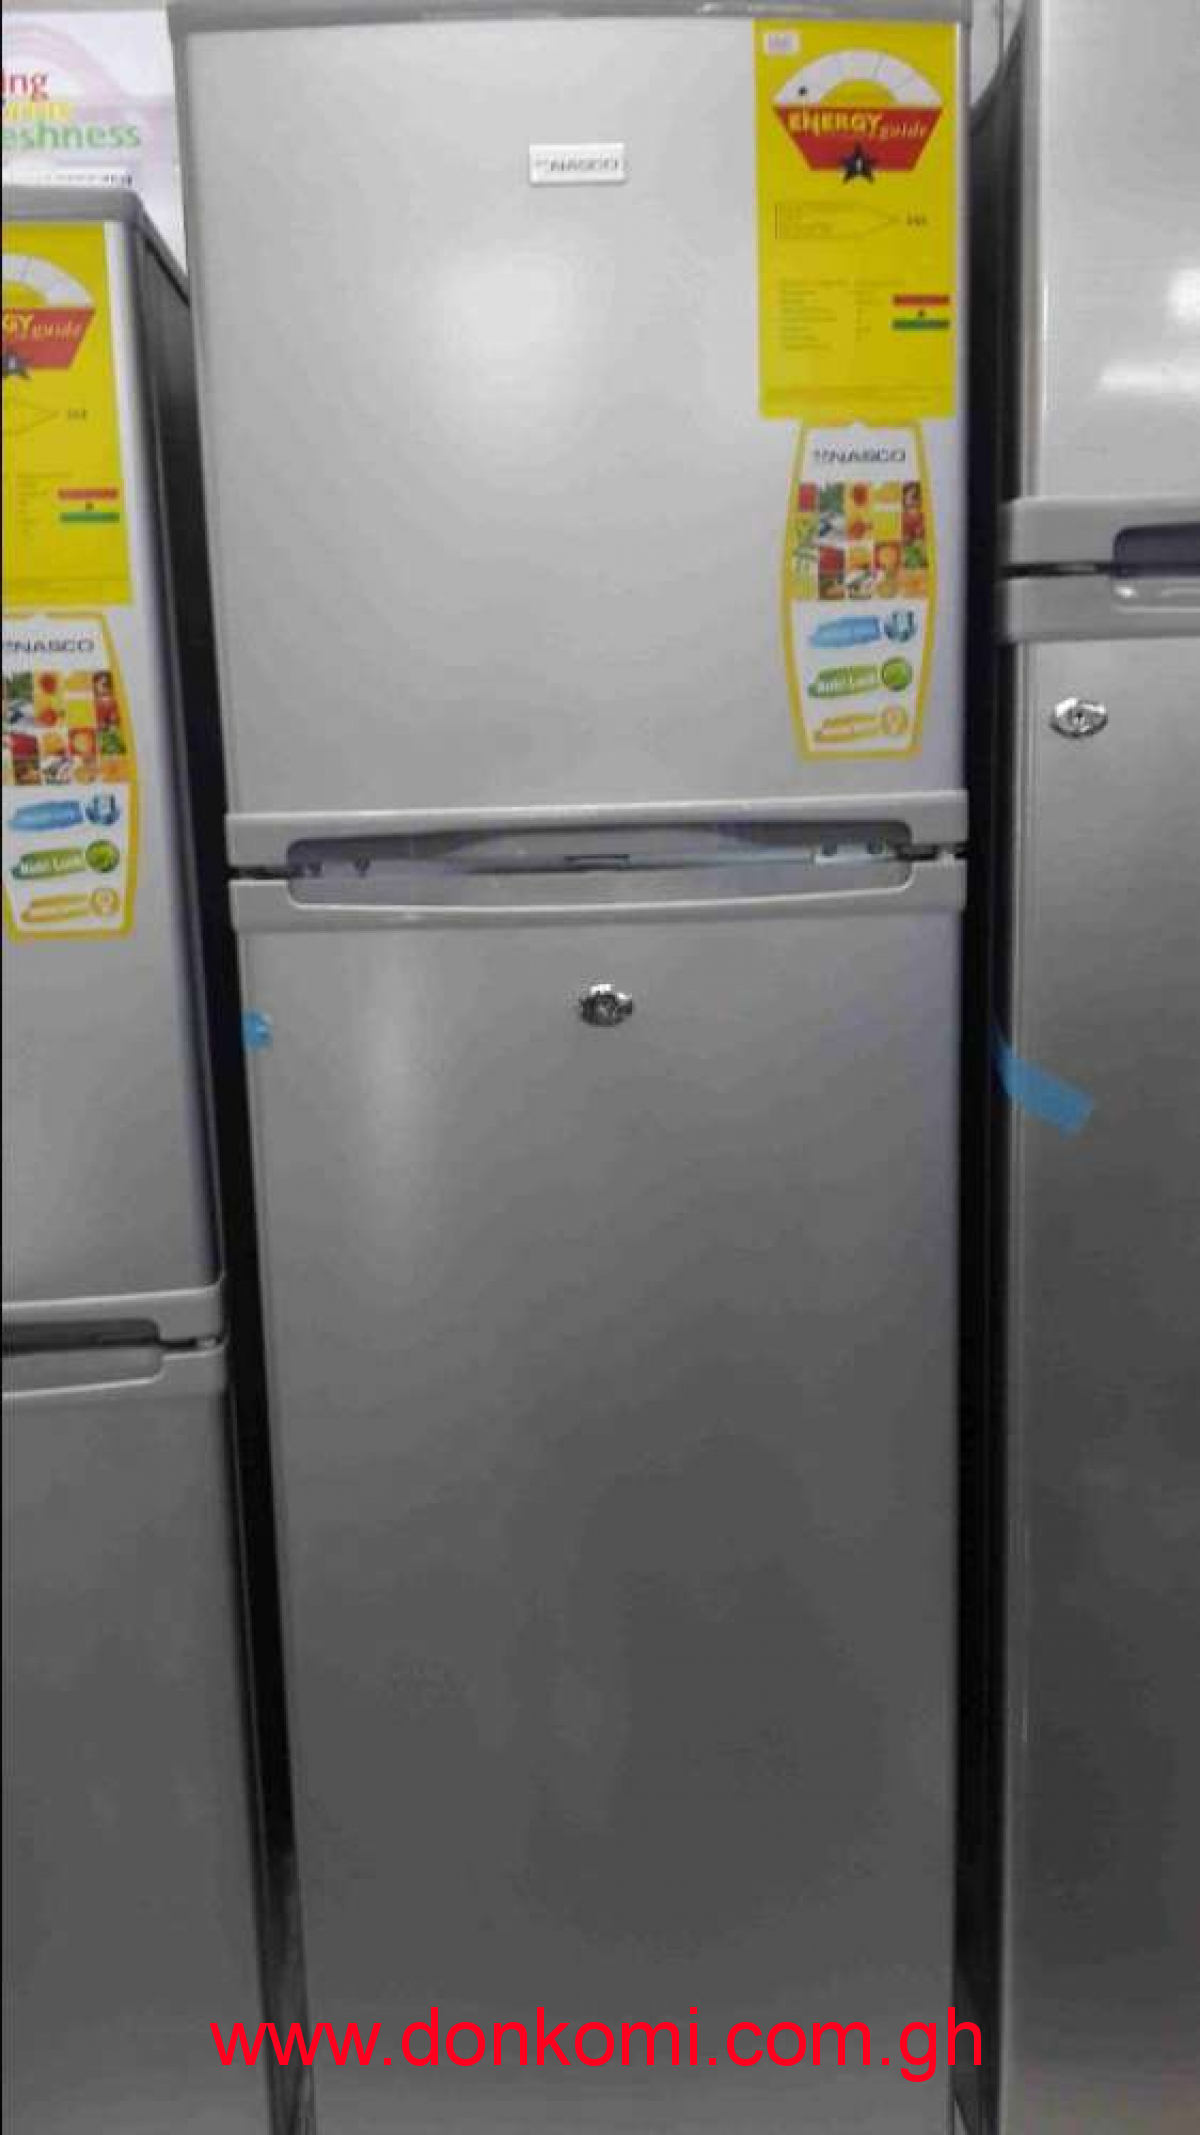 216 DF22 Fridge Botom Freezer Nasco